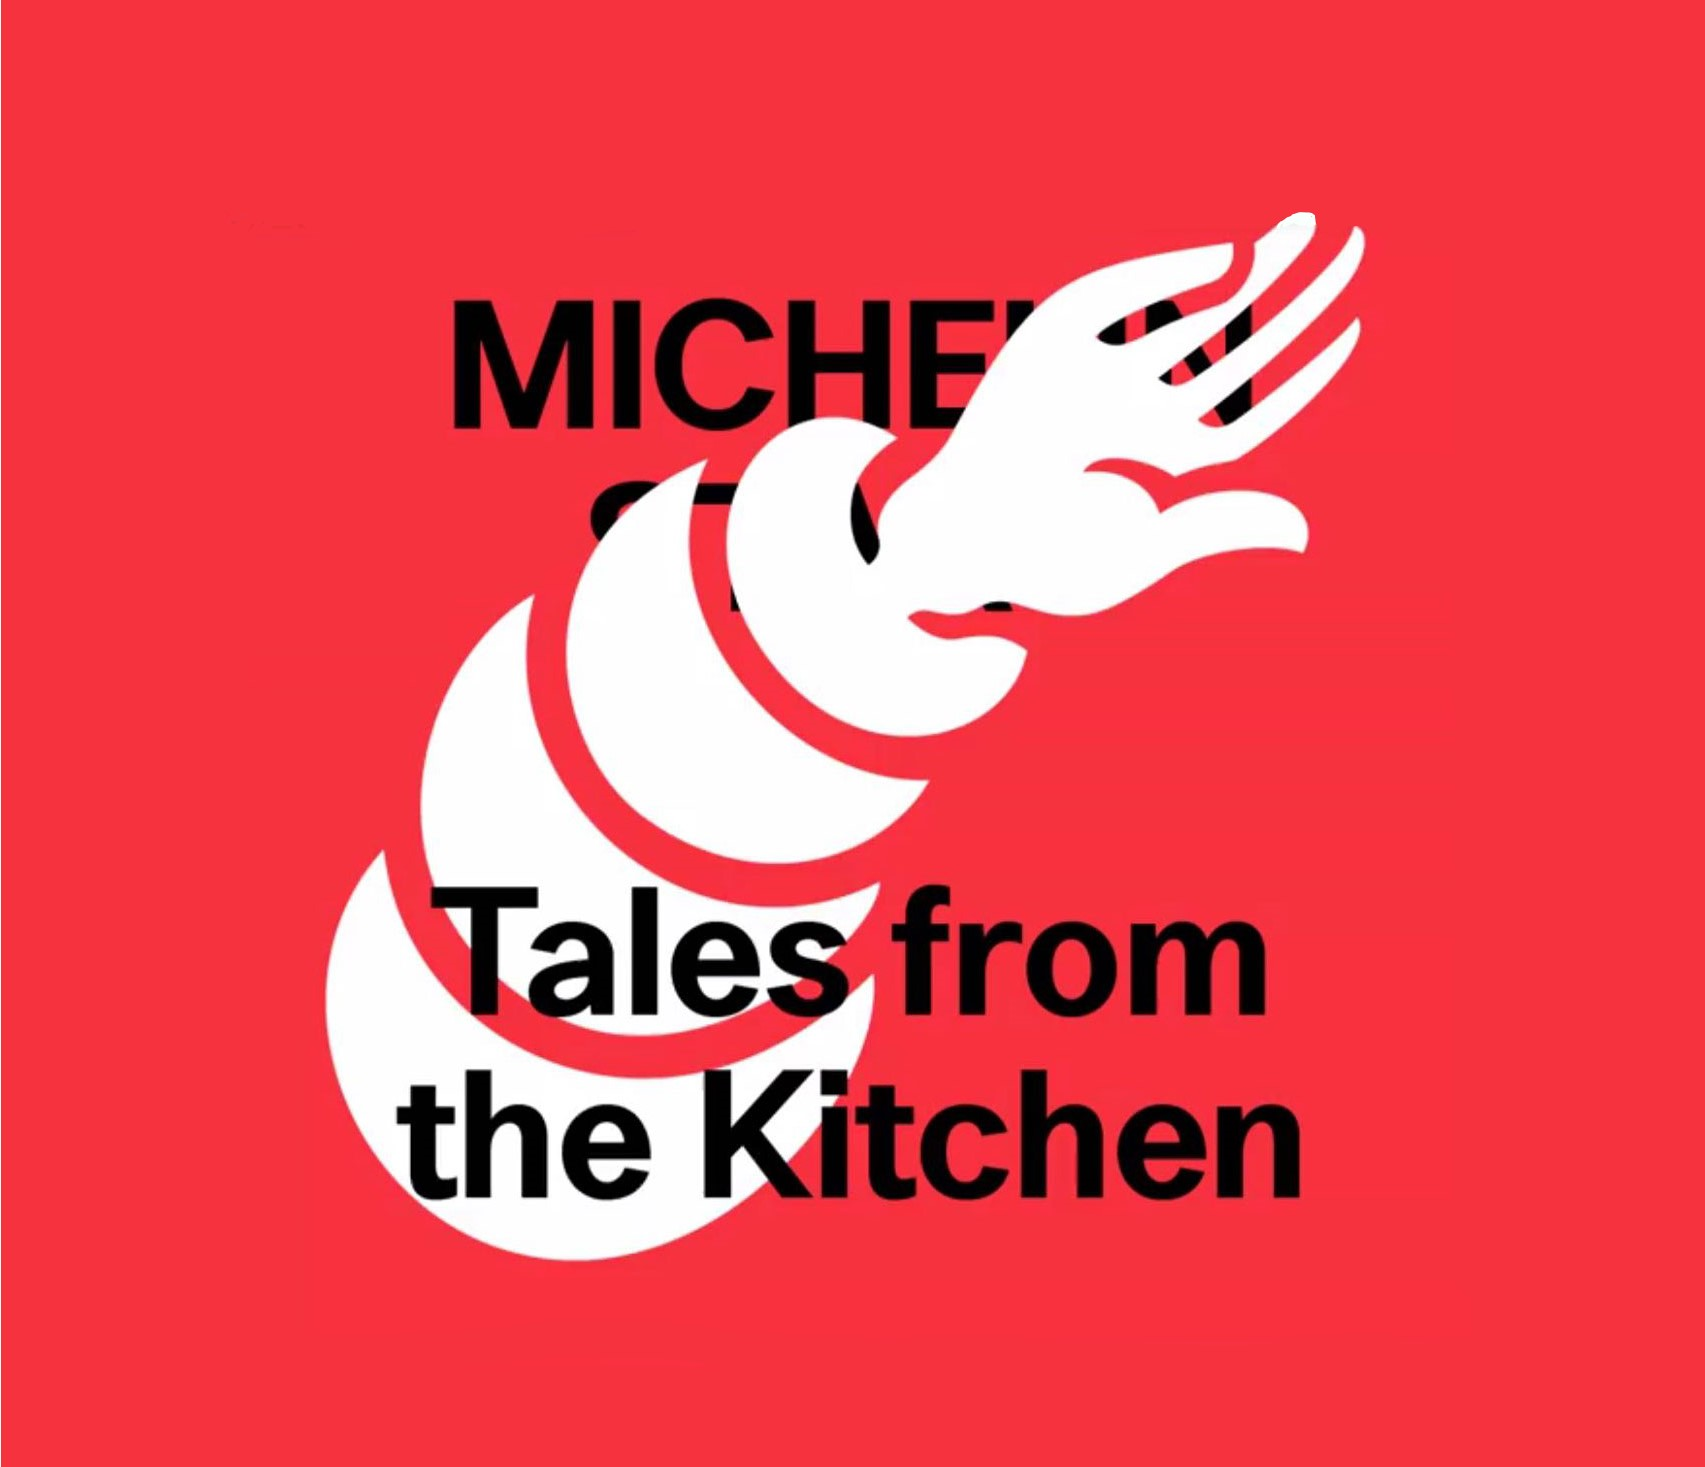 Michelin Stars Tales from the kitchen